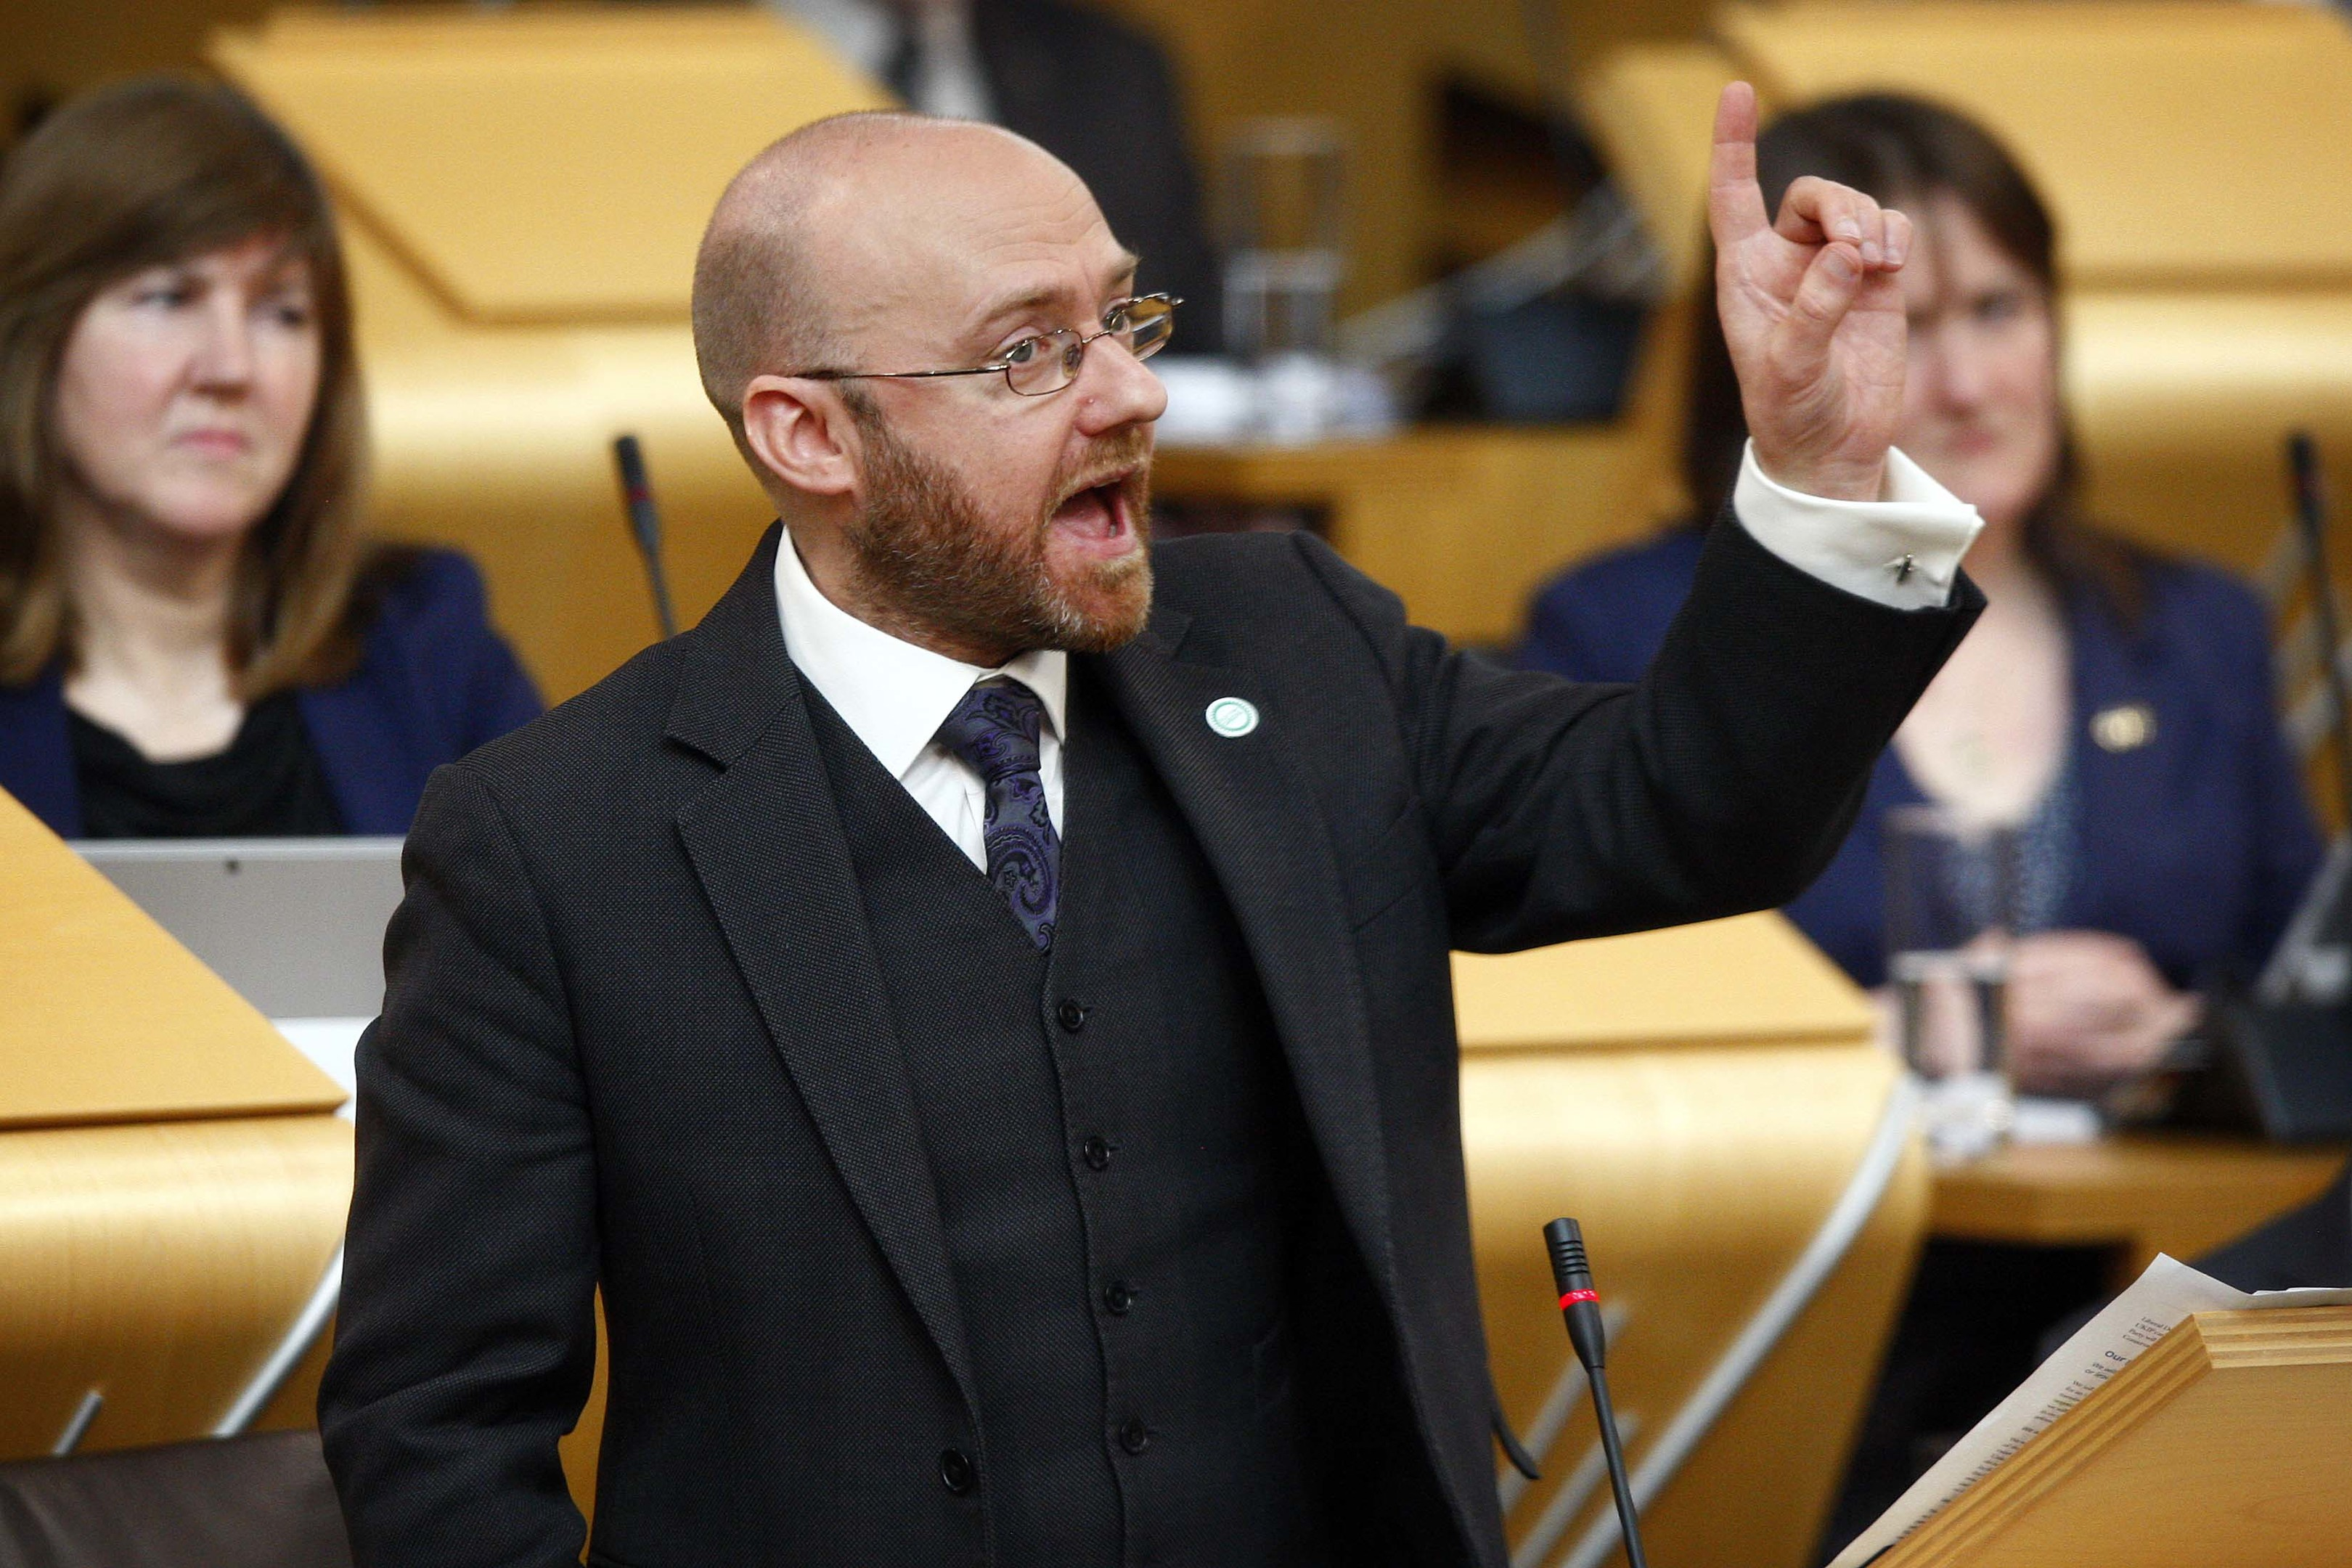 The Scottish Green Party's Patrick Harvie.